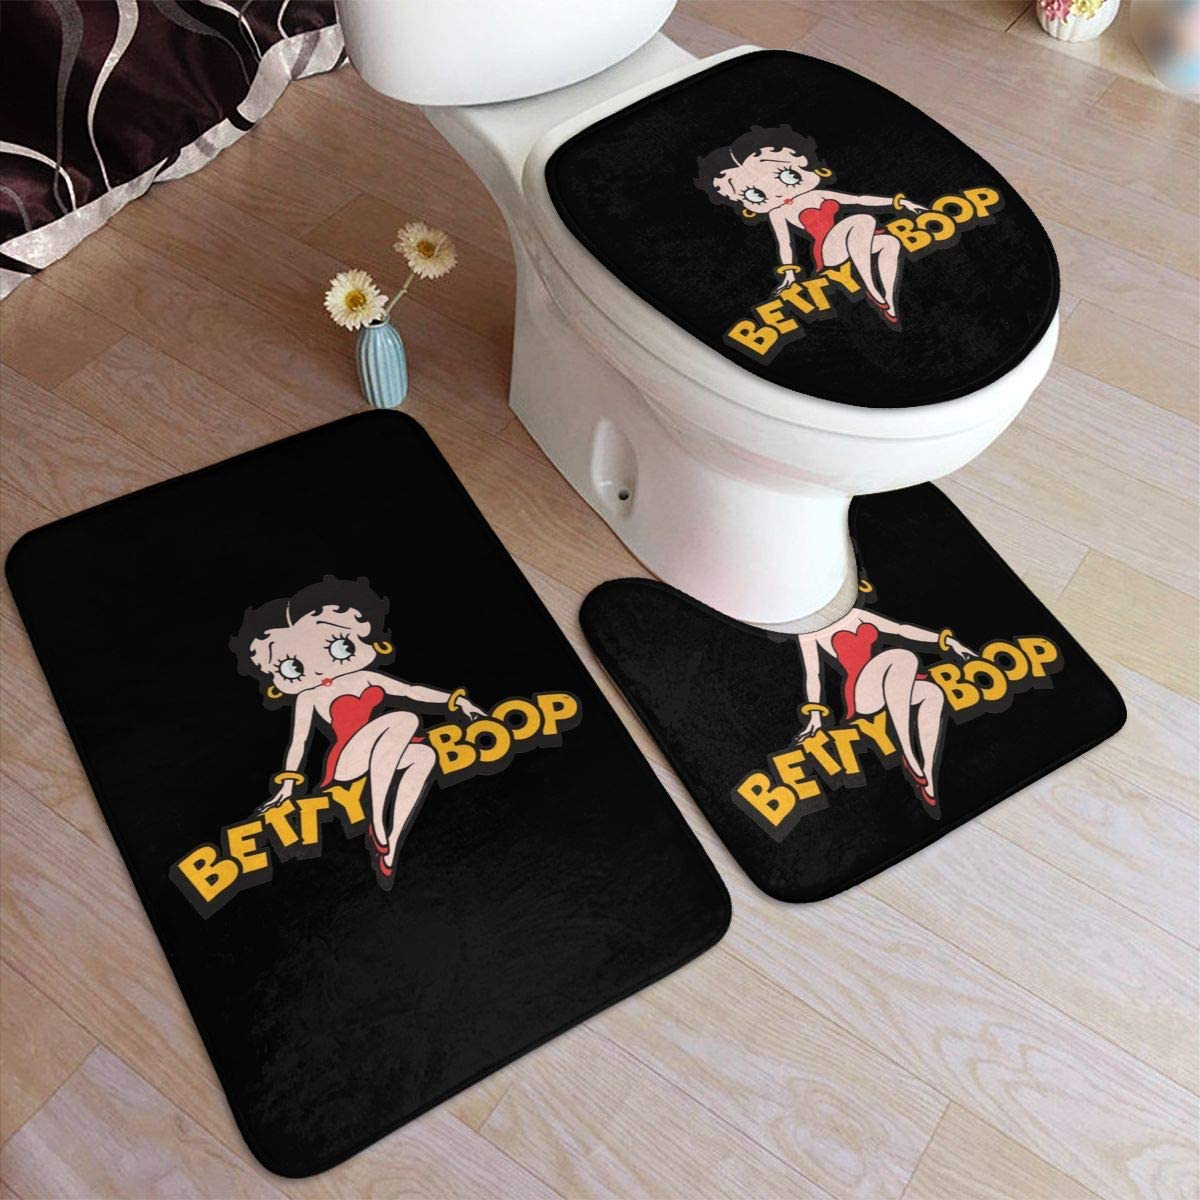 Betty Boop Bathroom Rug Mats Set 3 Piece Anti-Skid Pads Bath Mat + Contour + Toilet Lid Cover Bathroom Antiskid Pad 19.5in31.5in